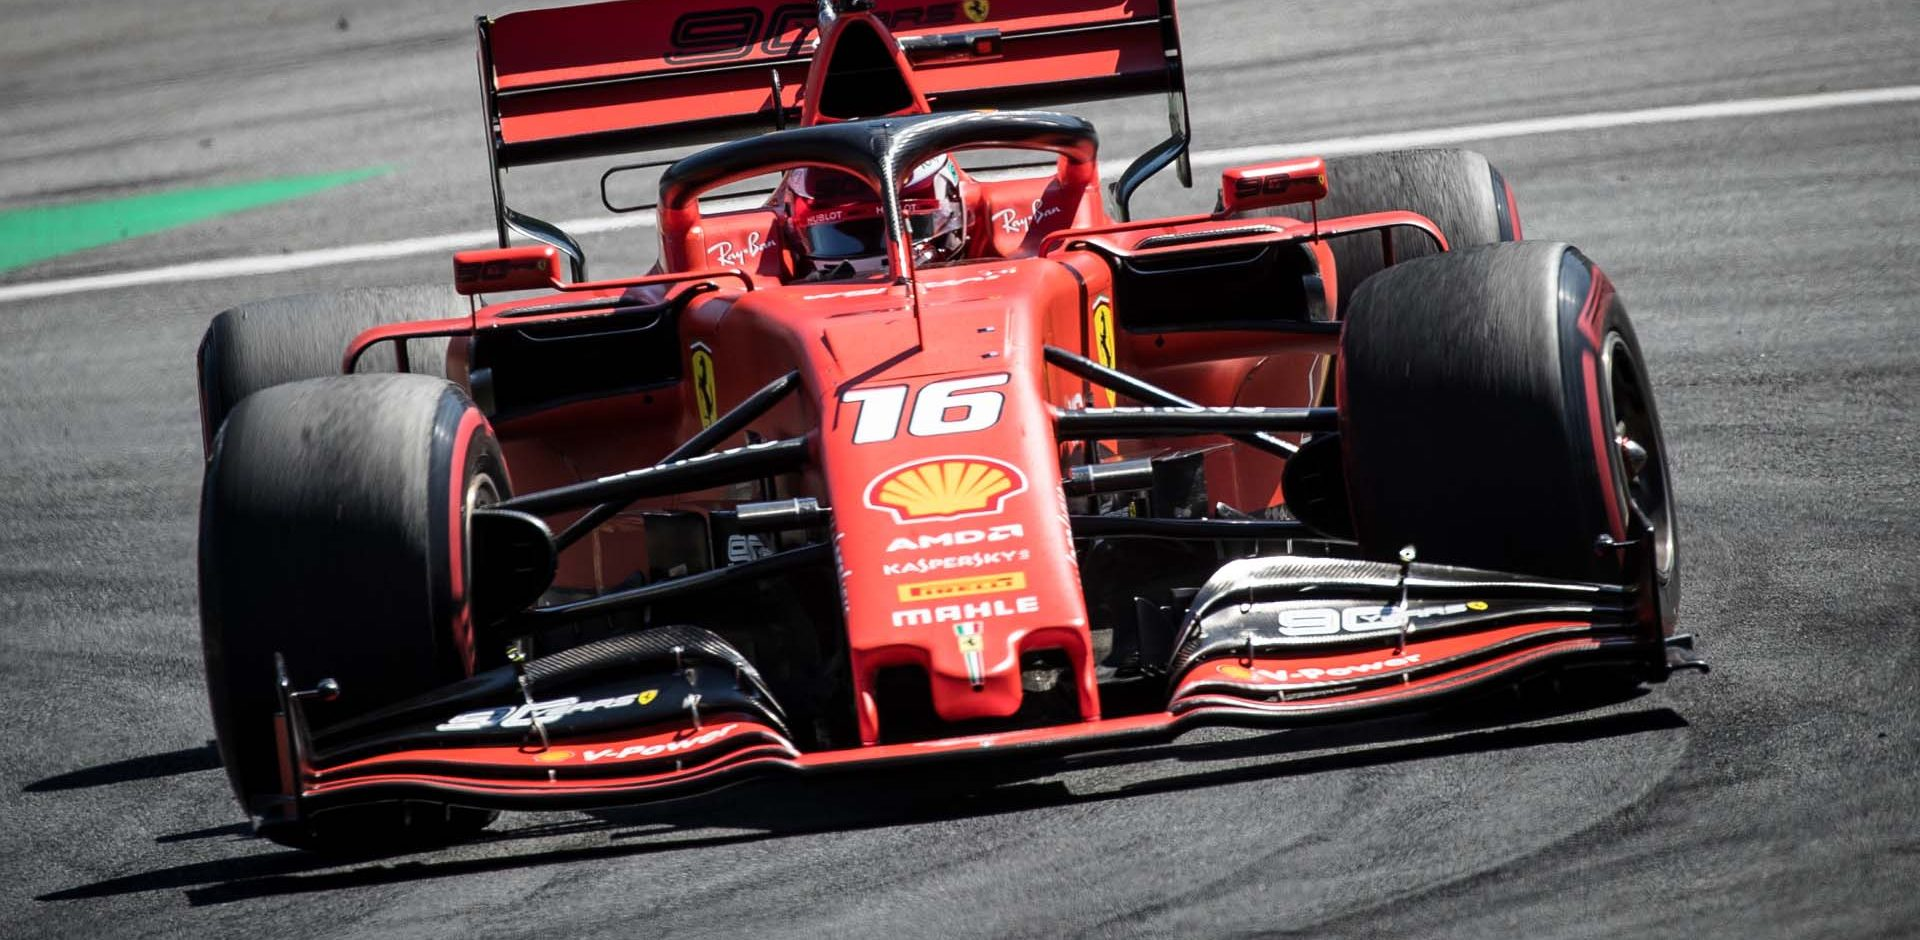 SPIELBERG,AUSTRIA,30.JUN.19 - MOTORSPORTS, FORMULA 1 - Grand Prix of Austria, Red Bull Ring. Image shows Charles Leclerc (MON/ Ferrari). Photo: GEPA pictures/ Matic Klansek // GEPA pictures/Red Bull Content Pool // AP-1ZTAZ31J51W11 // Usage for editorial use only // Please go to www.redbullcontentpool.com for further information. //